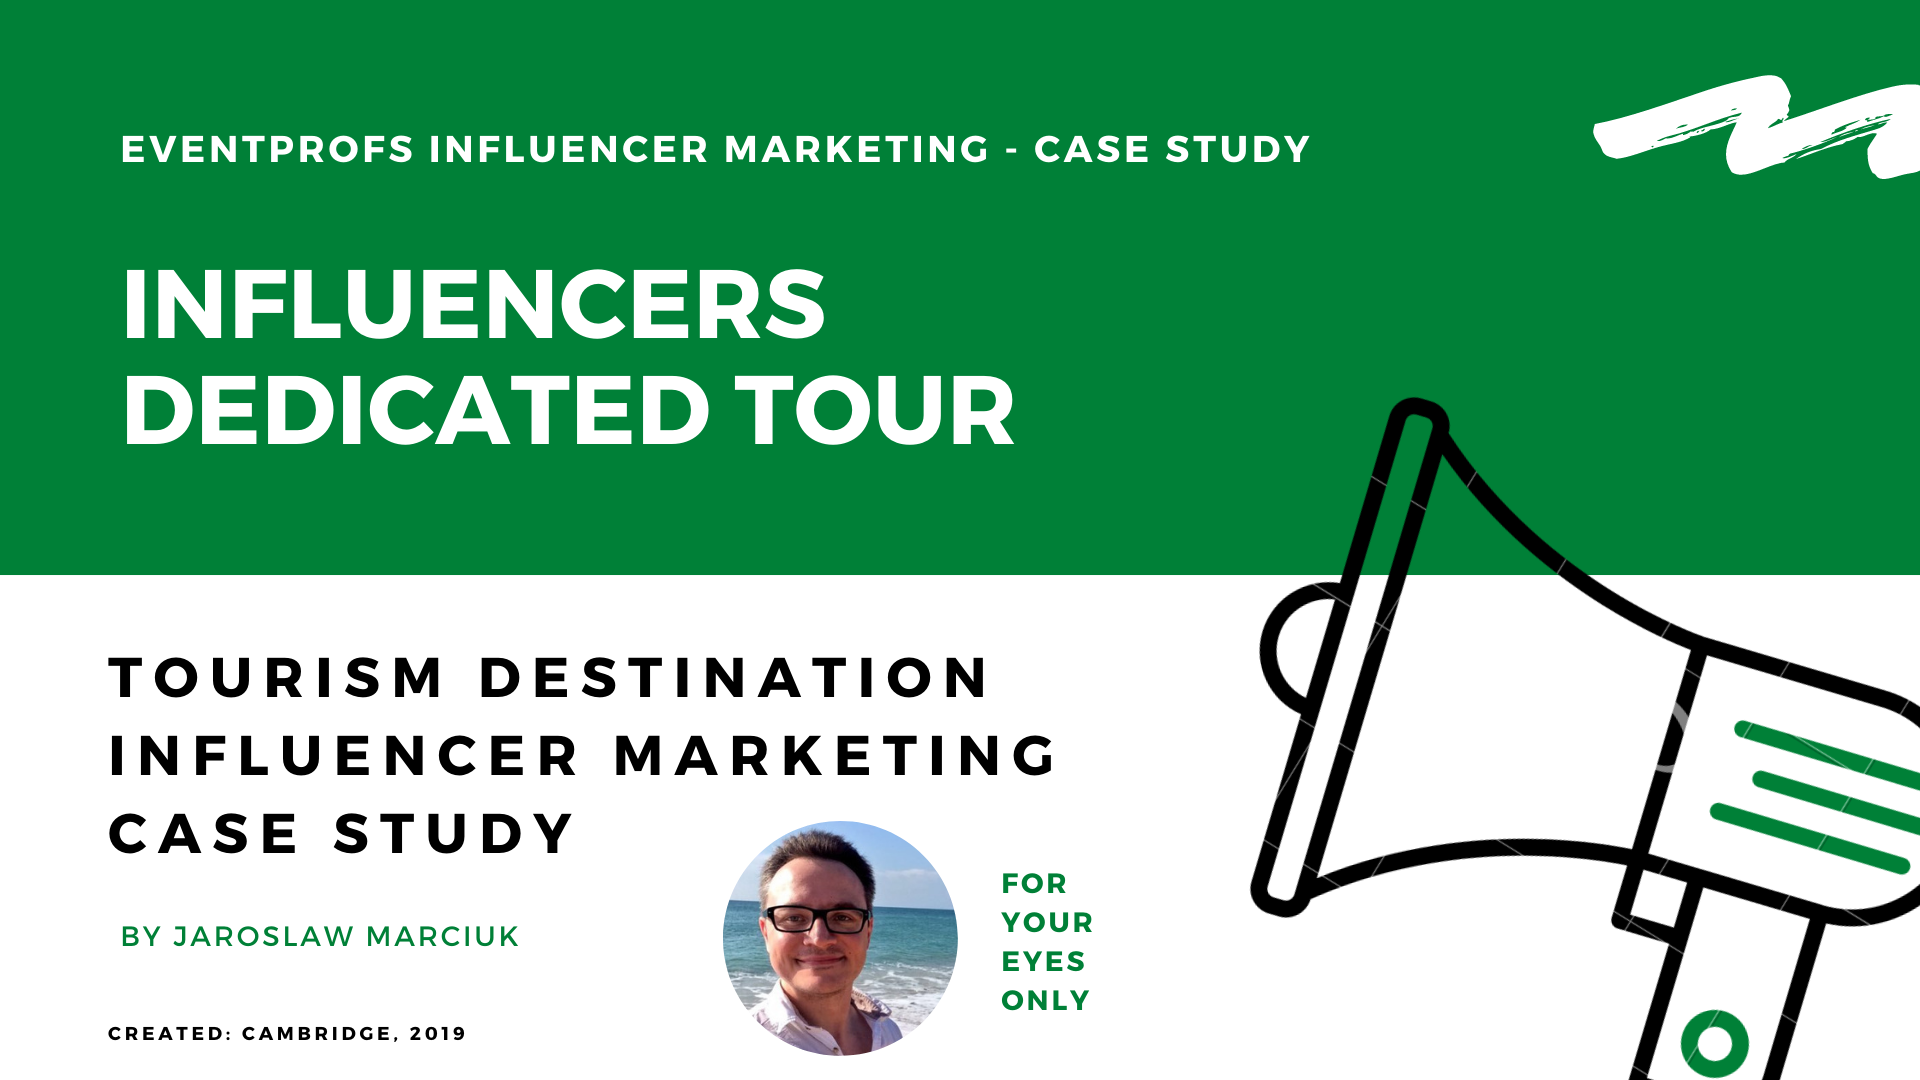 inflluencer marketing campaign destination case study tourism board